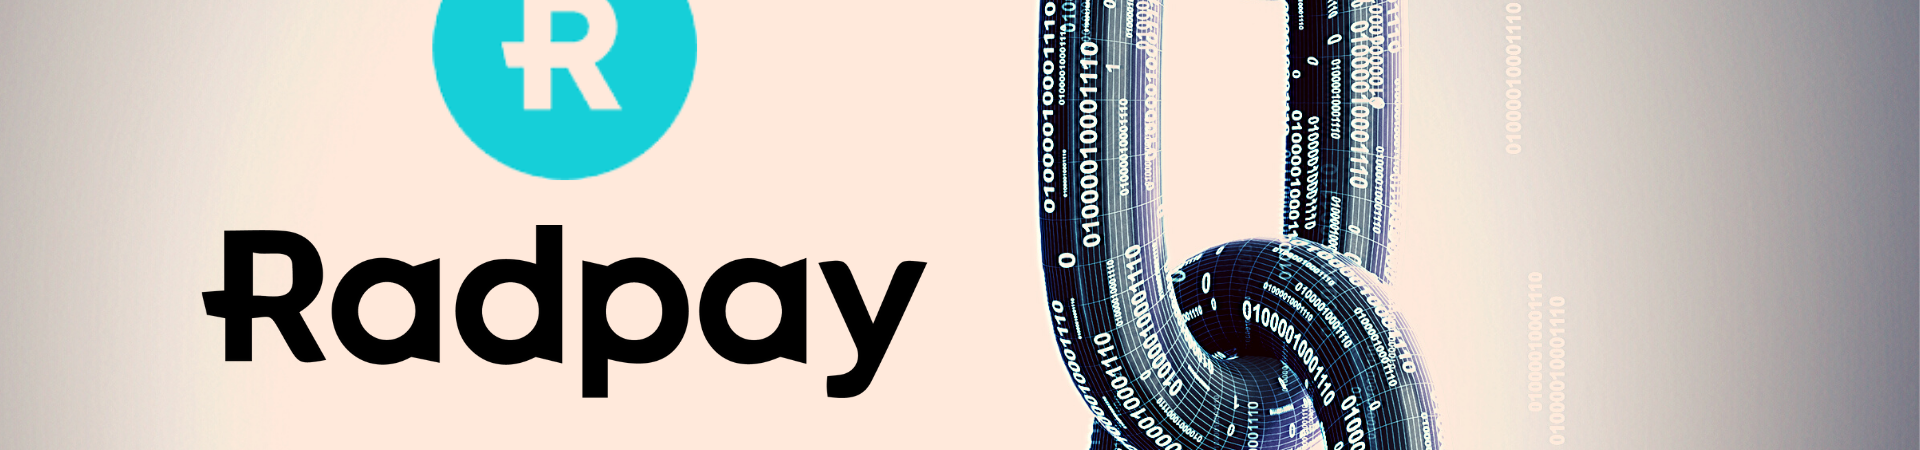 Radpay completes $1.2M seed funding round for blockchain based payments technology